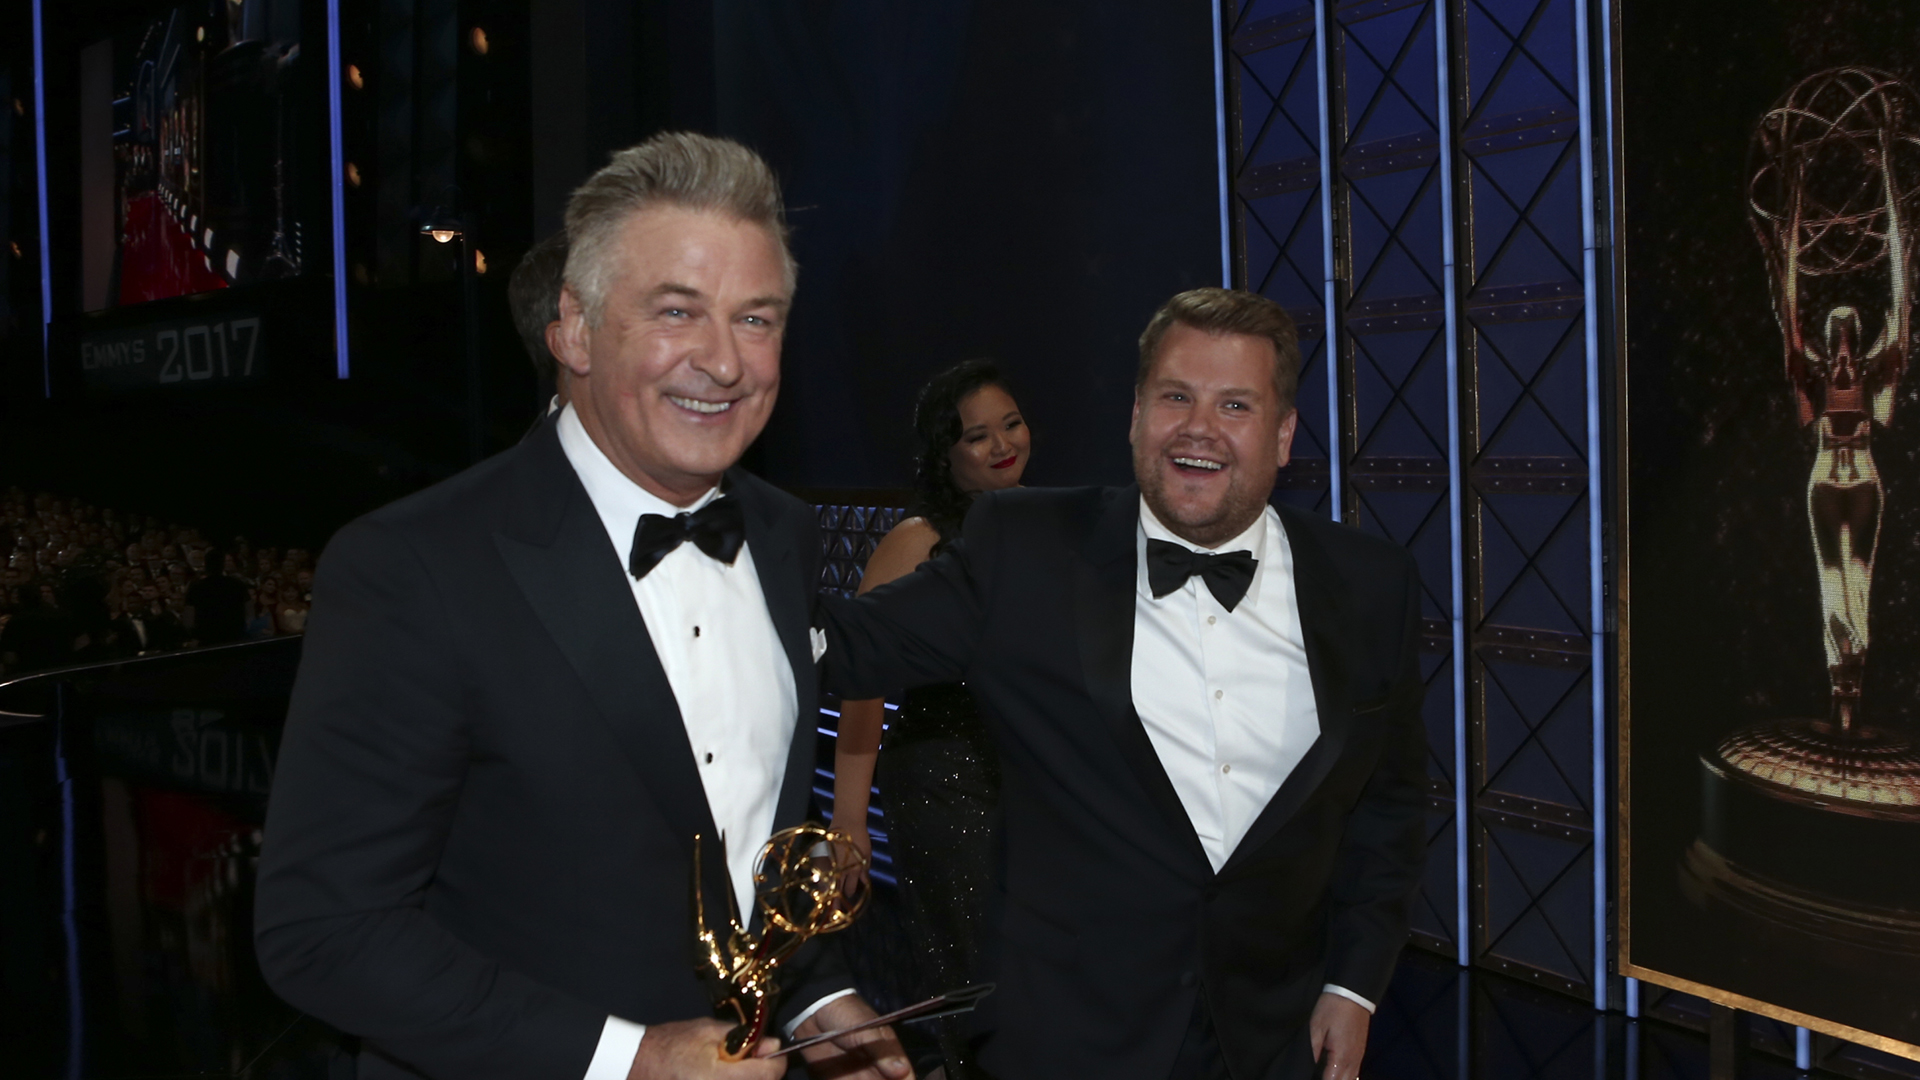 Alec Baldwin wins Outstanding Supporting Actor in a Comedy Series at The 69th Emmy Awards.